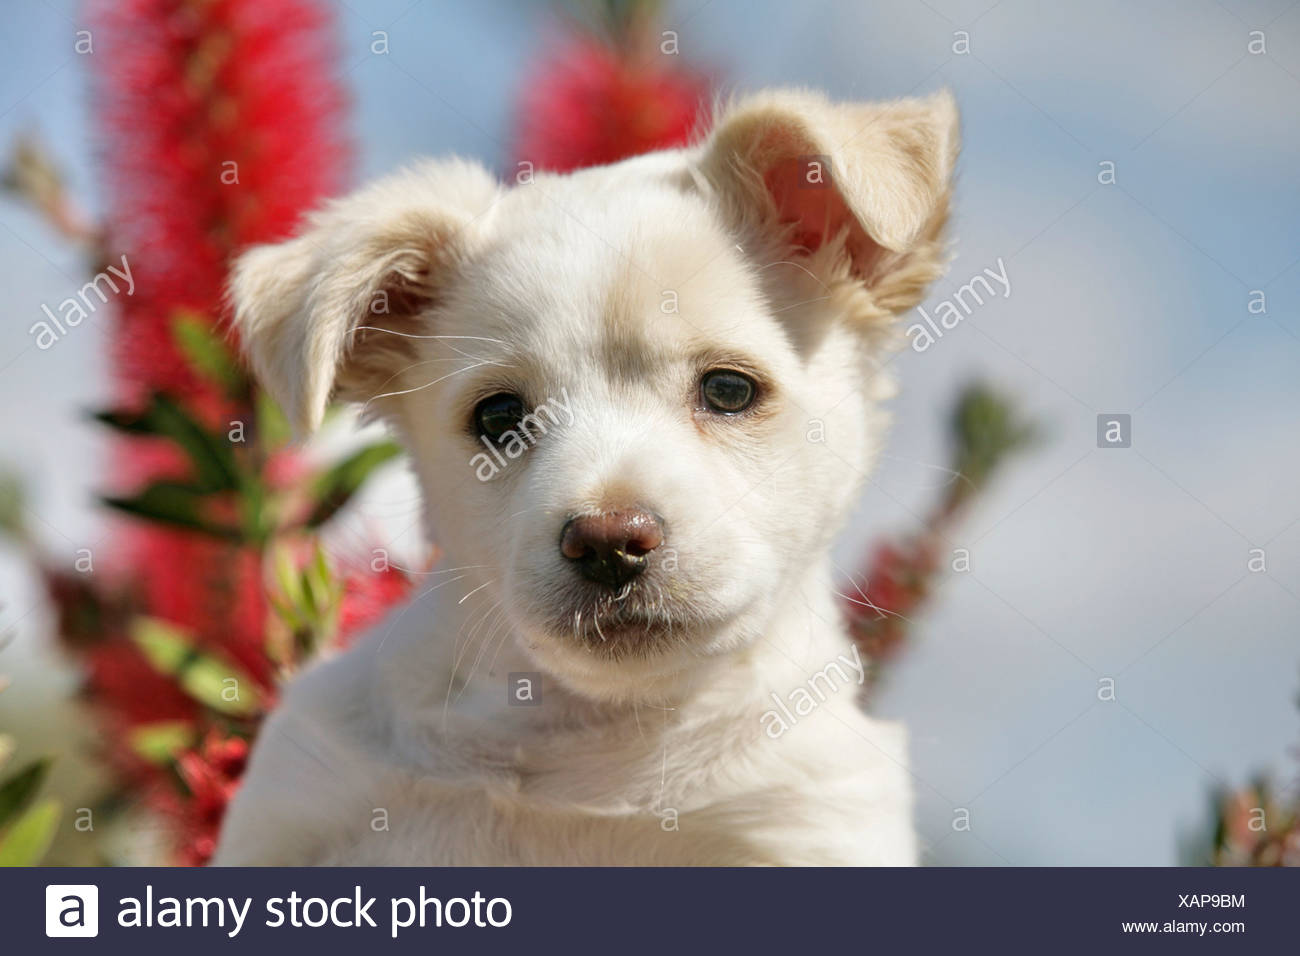 Crossbreed Puppies Stock Photos Crossbreed Puppies Stock